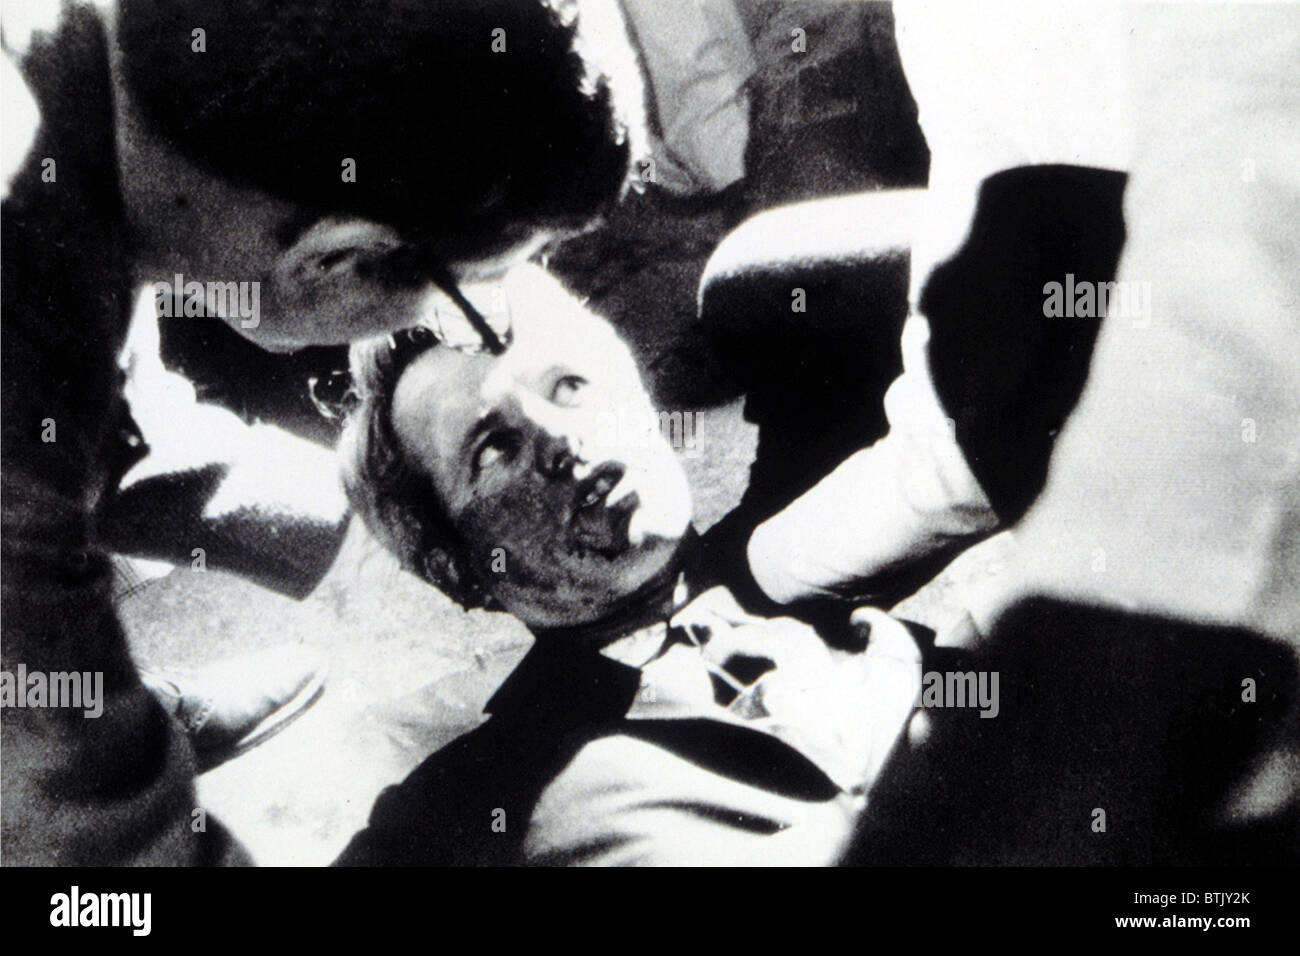 robert kennedy after being shot in los angeles june 5 1968 stock